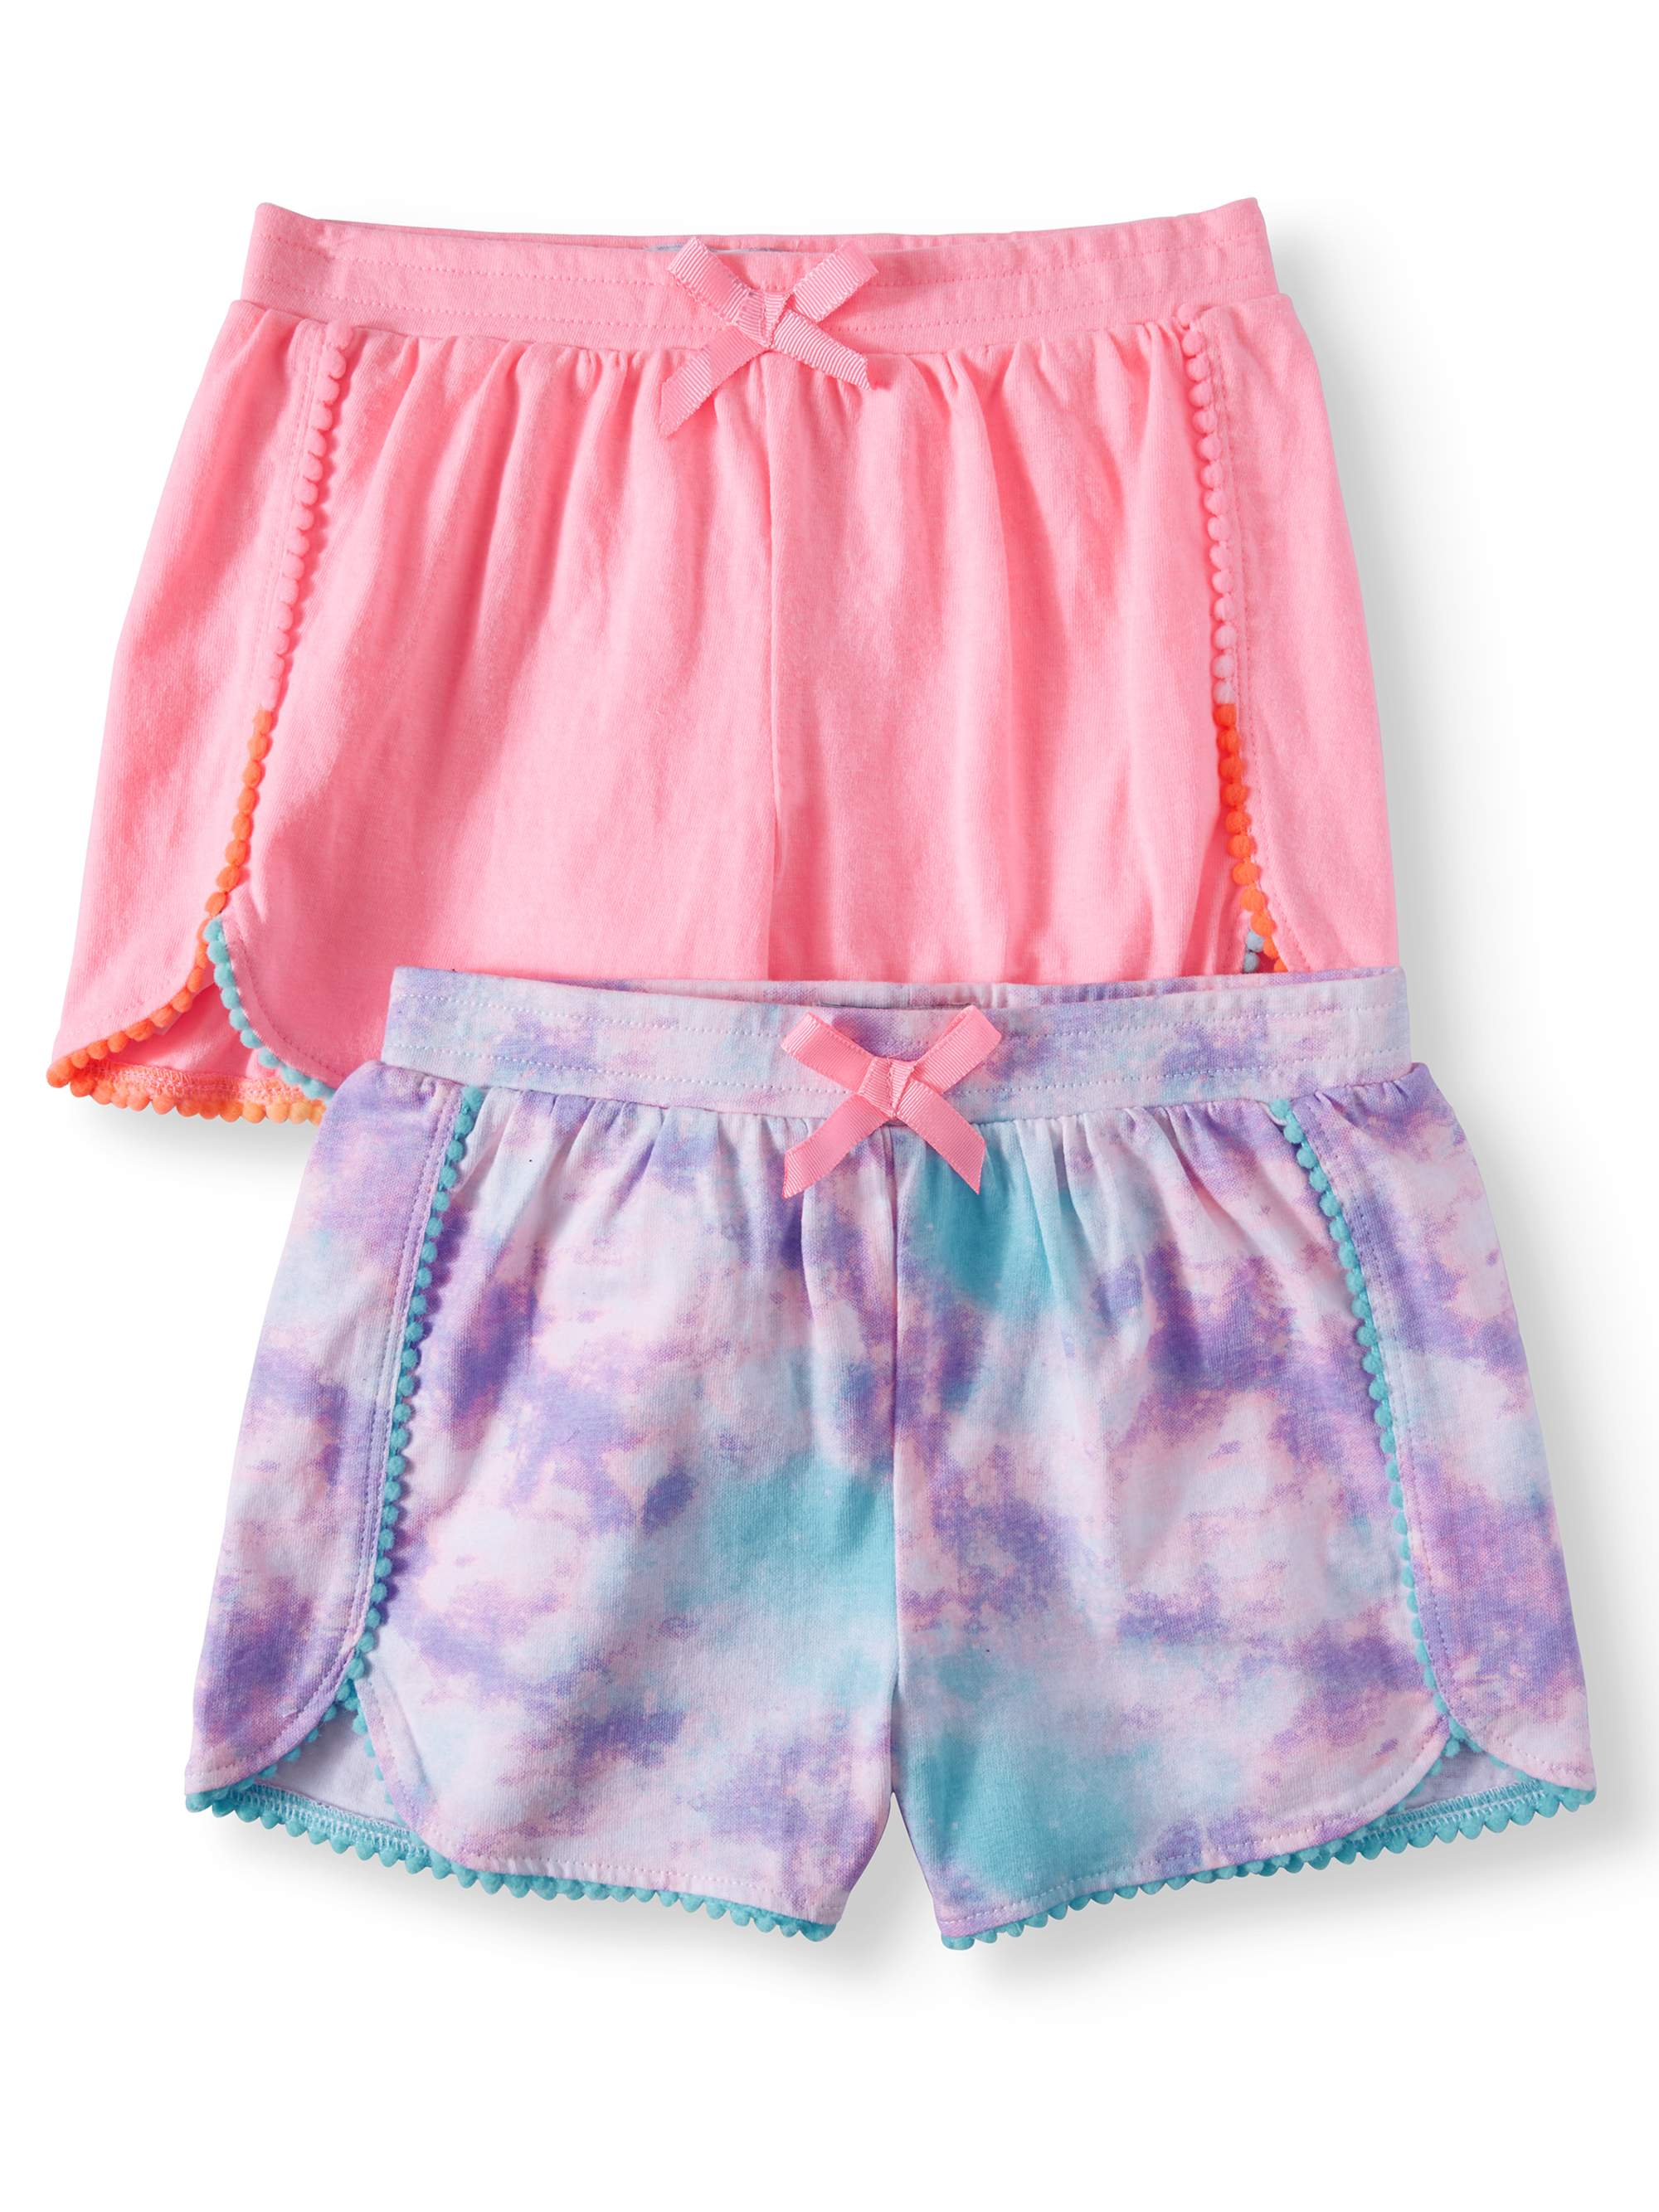 Solid and Printed Pom Trim Shorts, 2-Pack (Little Girls & Big Girls)